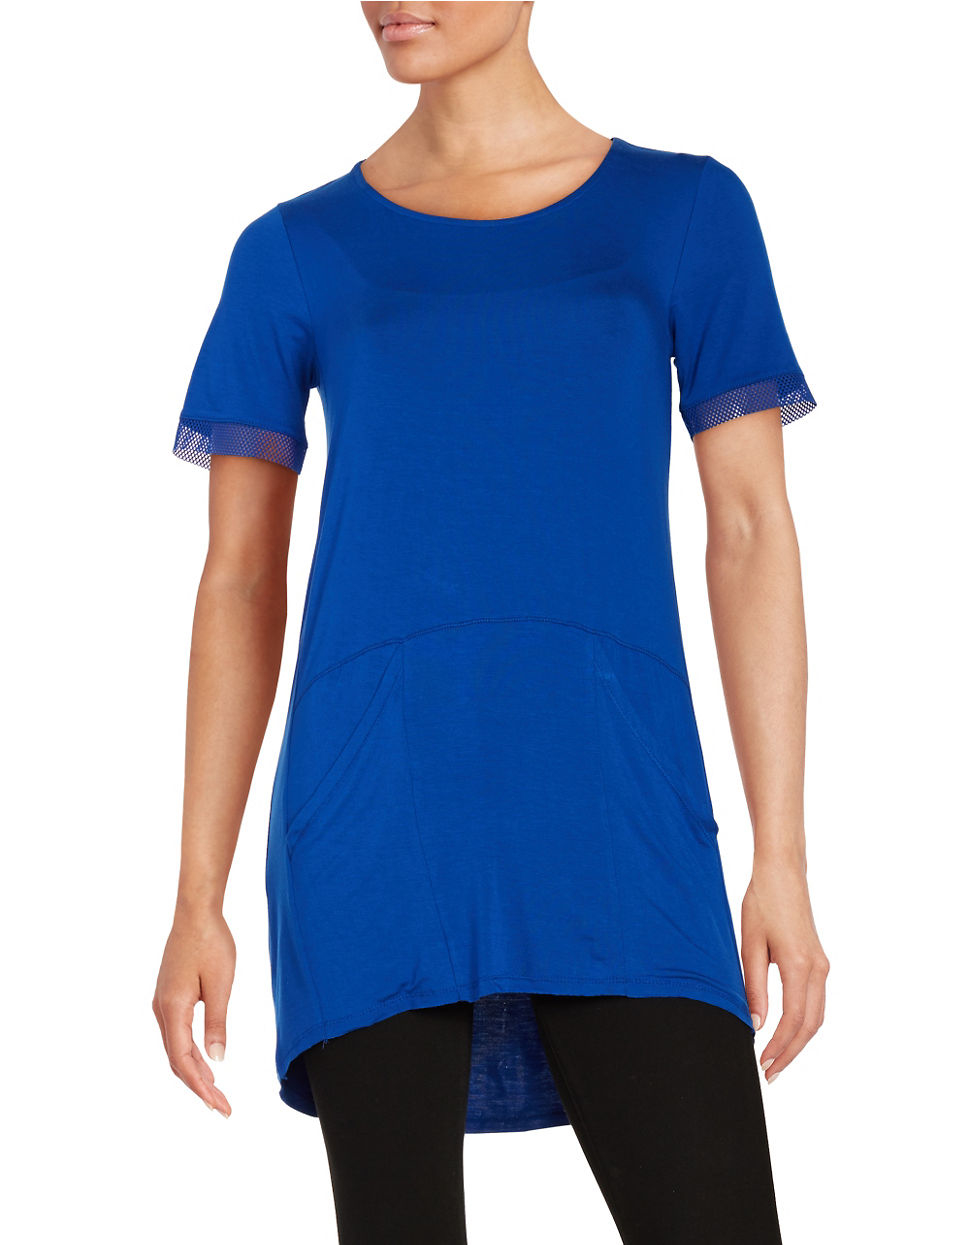 Lord taylor mesh trimmed tee in blue lyst for Blue fish clothing